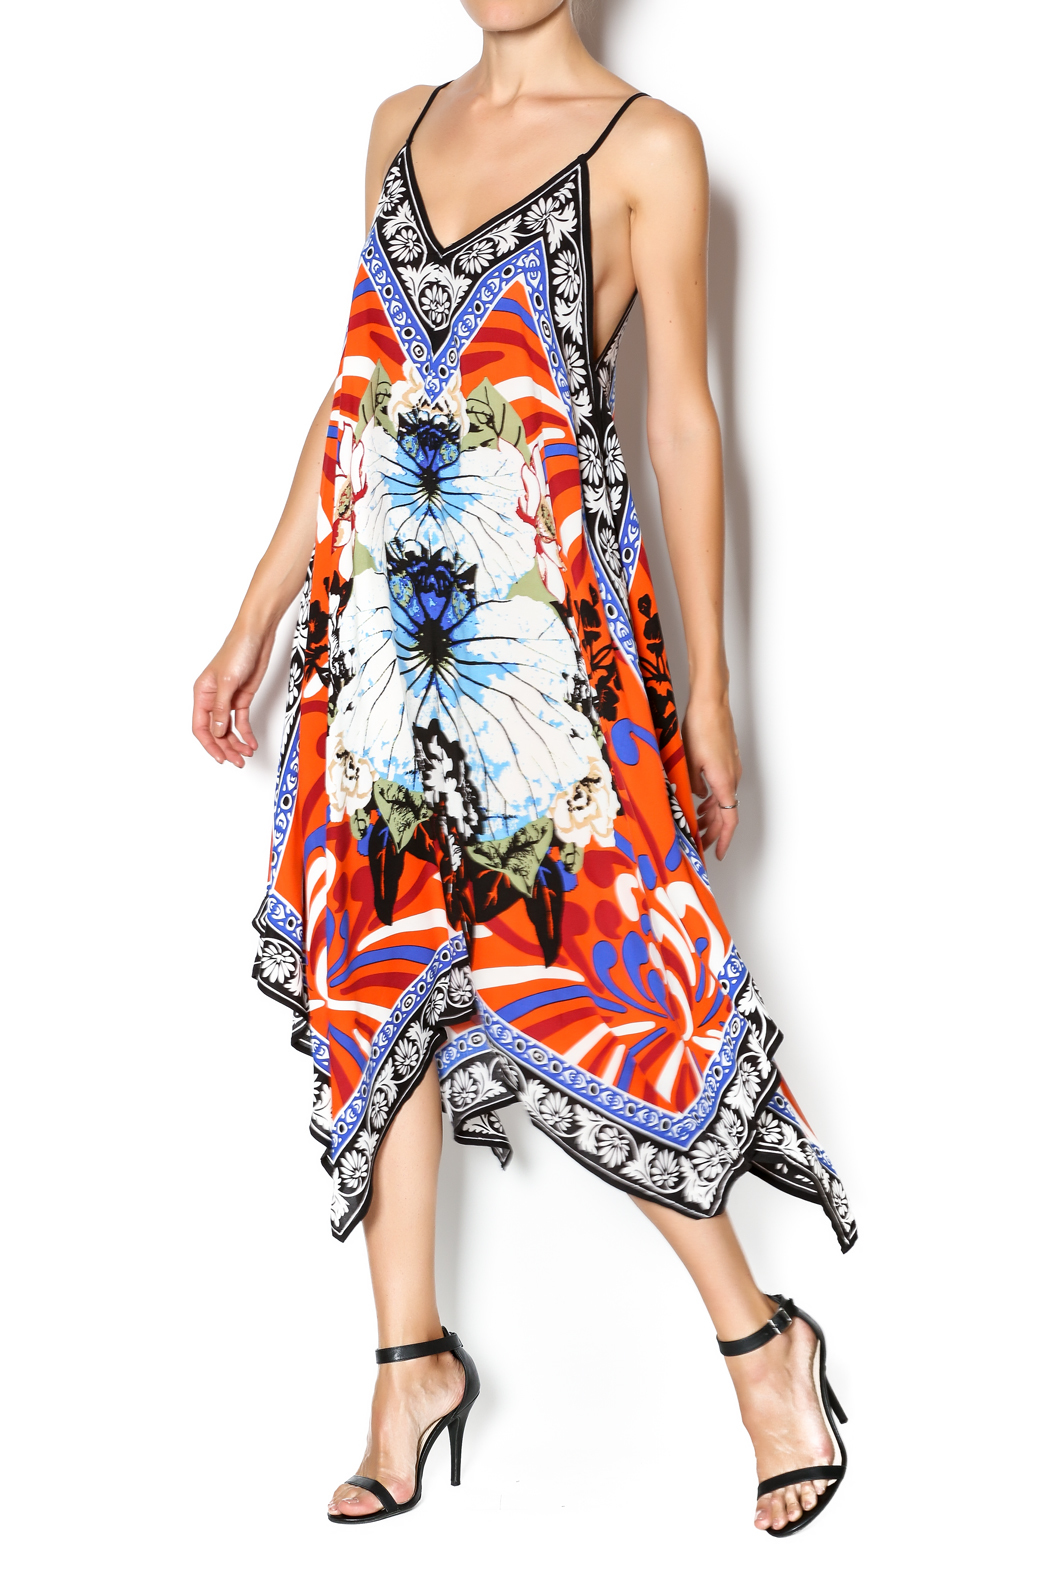 Jealous Tomato Scarf Printed Dress From Manhattan By Dor L